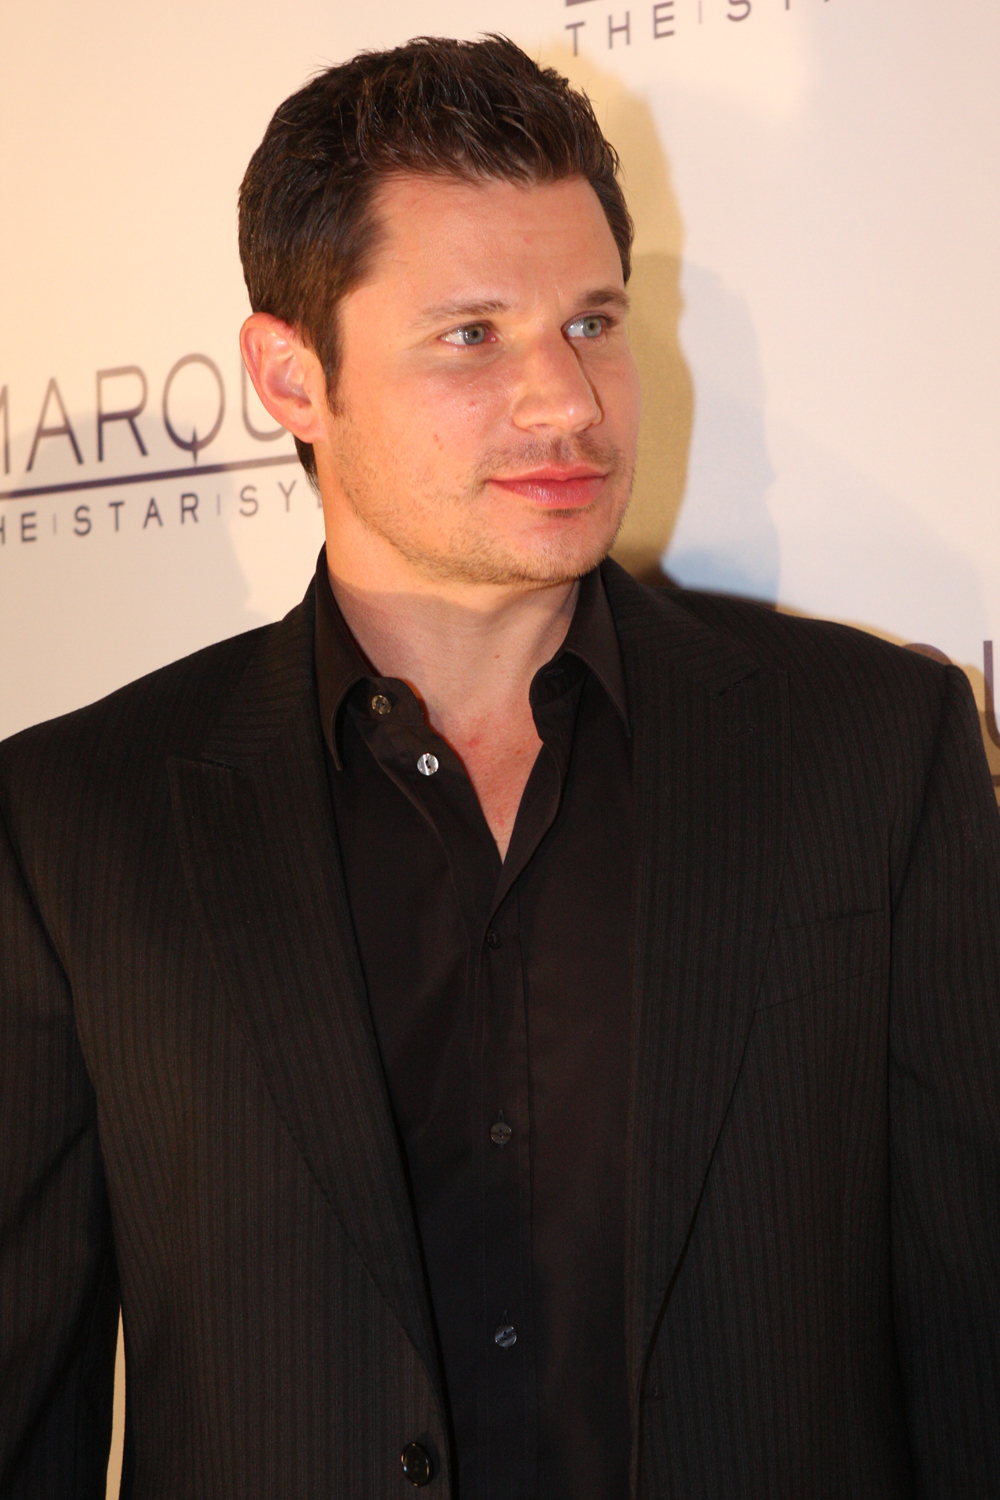 The 44-year old son of father John Lachey and mother Kate La Nick Lachey in 2018 photo. Nick Lachey earned a unknown million dollar salary - leaving the net worth at 20 million in 2018